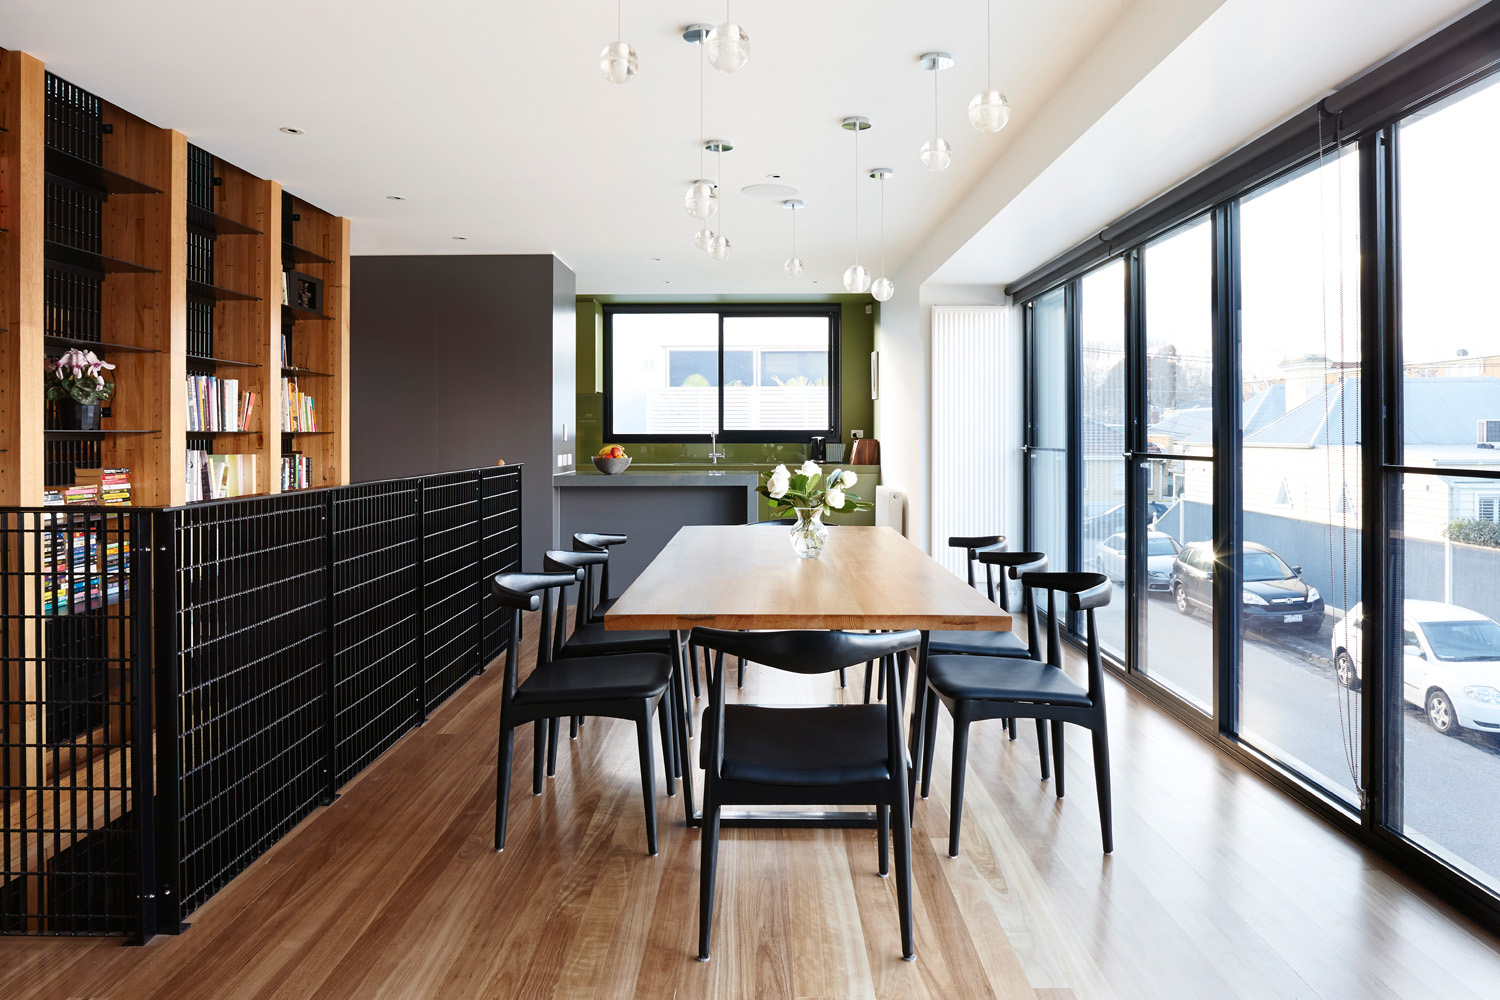 Dark-coloured chairs create contrast against warm timber